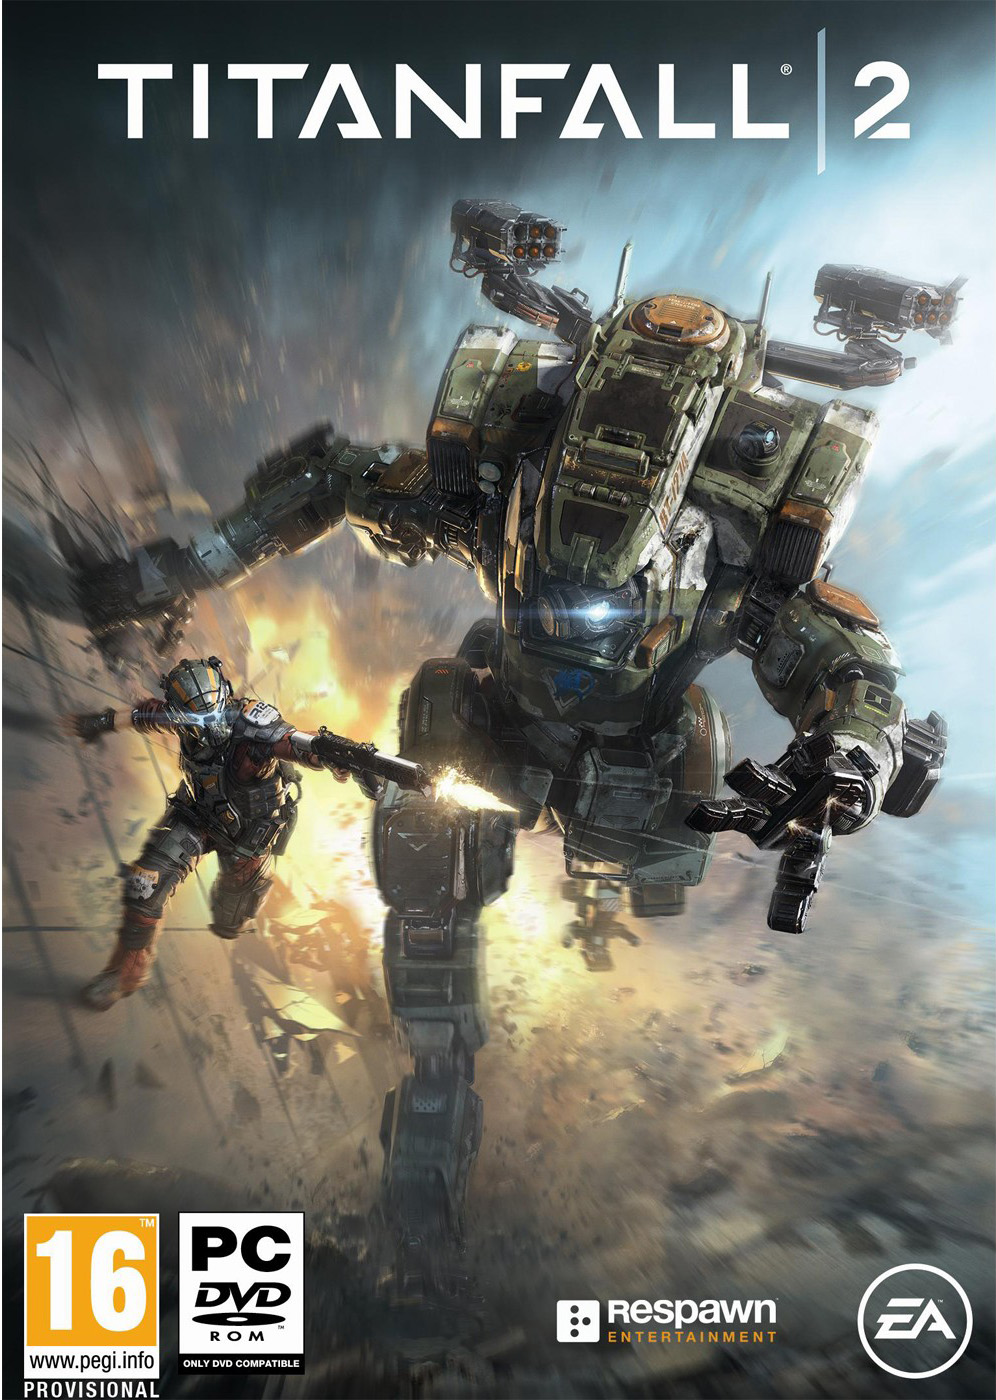 http://img5.downloadha.com/hosein/Game/October%202016/26/Titanfall-2-pc-cover-large.jpg